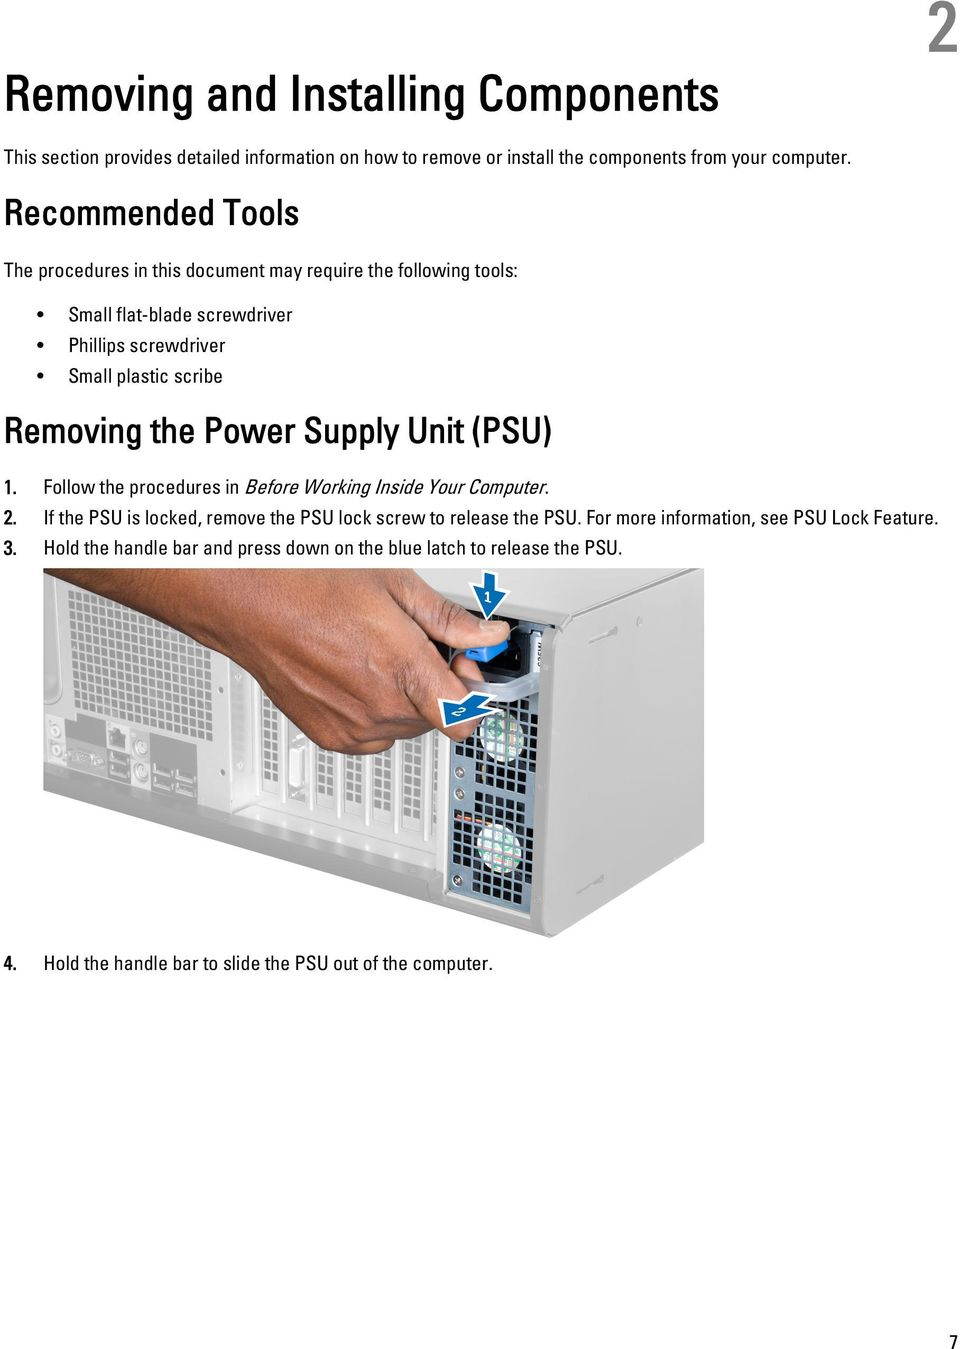 the Power Supply Unit (PSU) 1. Follow the procedures in Before Working Inside Your Computer. 2. If the PSU is locked, remove the PSU lock screw to release the PSU.